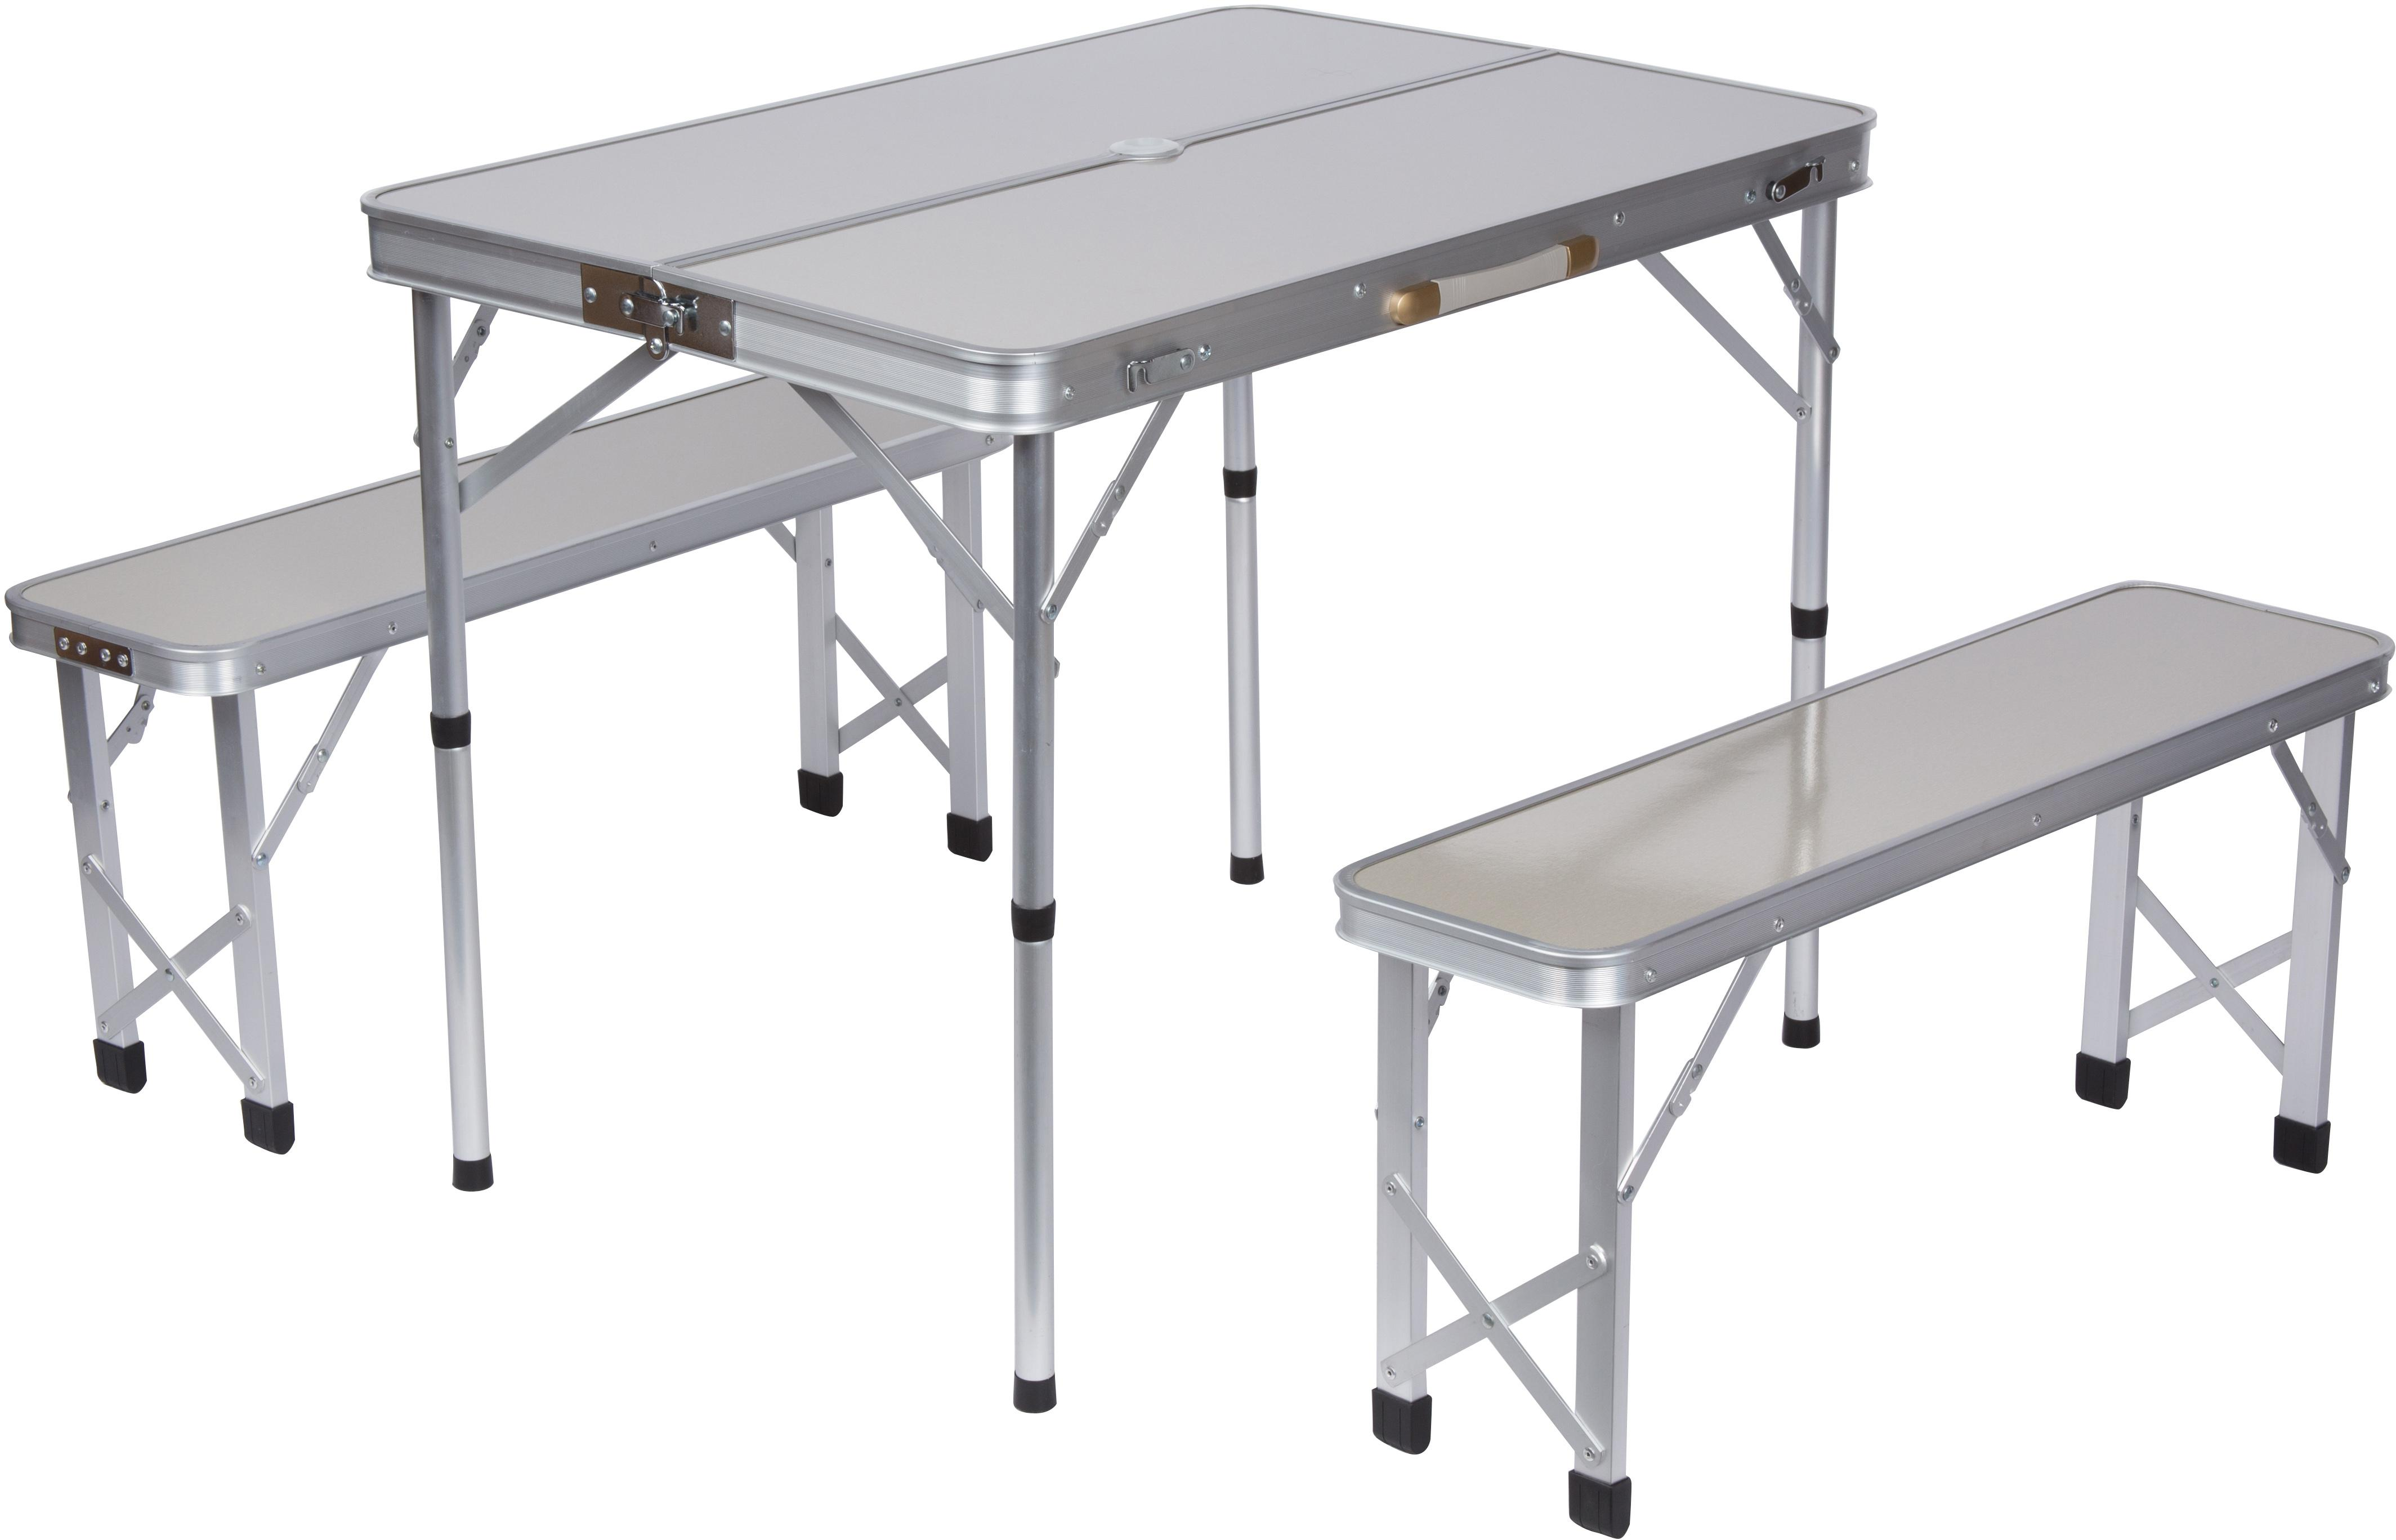 35 4 Quot Portable Aluminum Folding Suitcase Picnic Table With